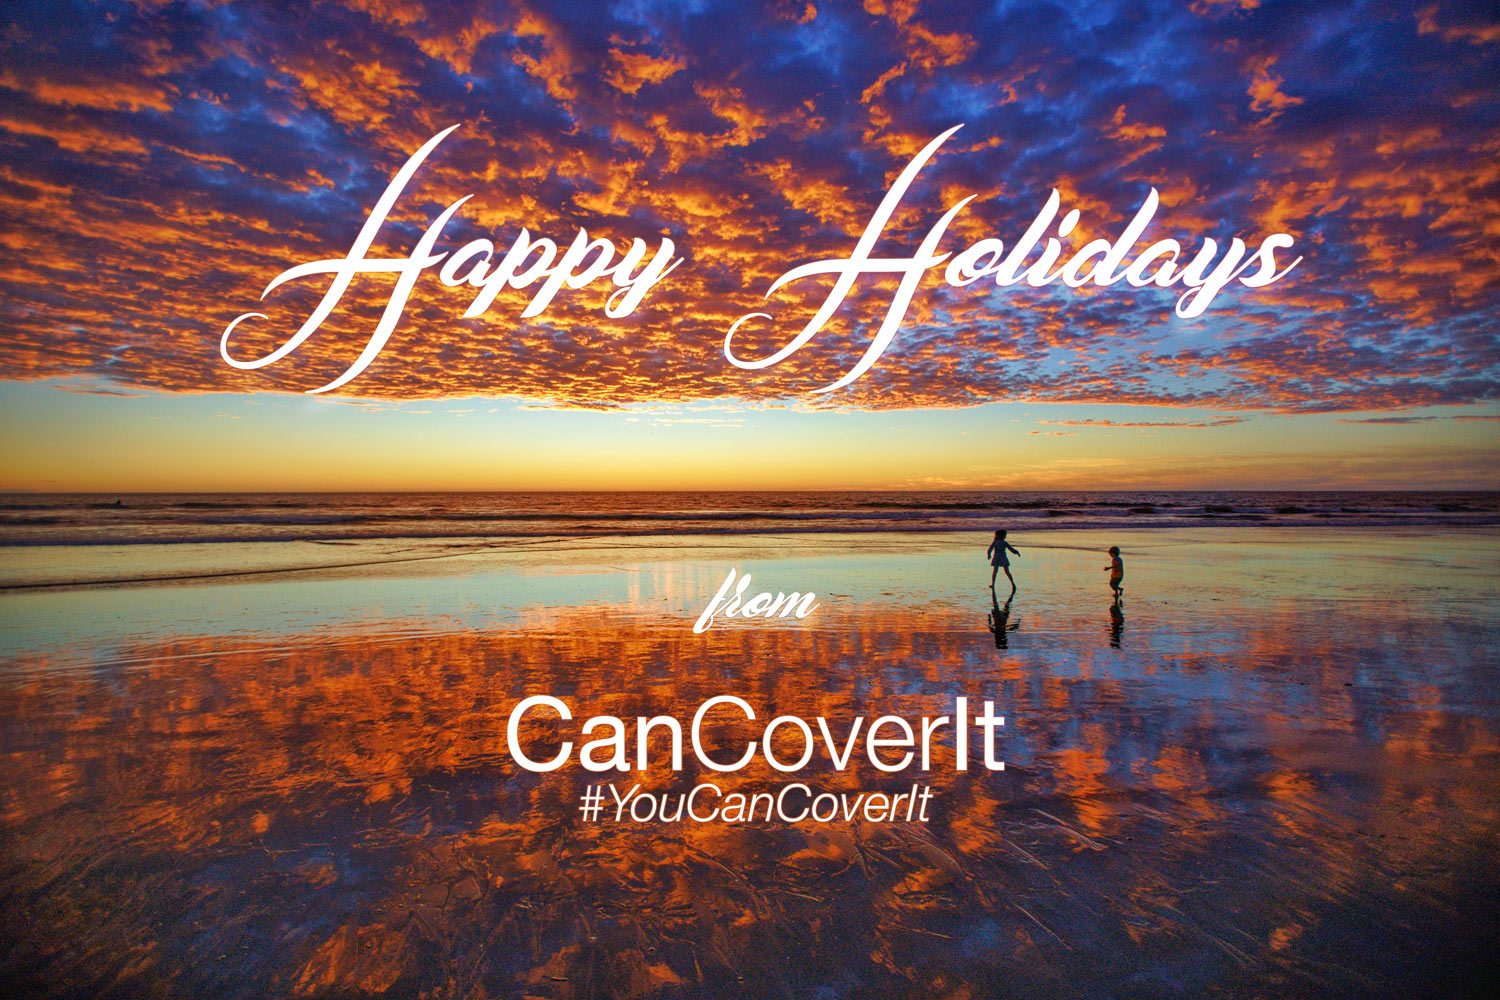 Happy Holidays 2017 from CanCoverIt